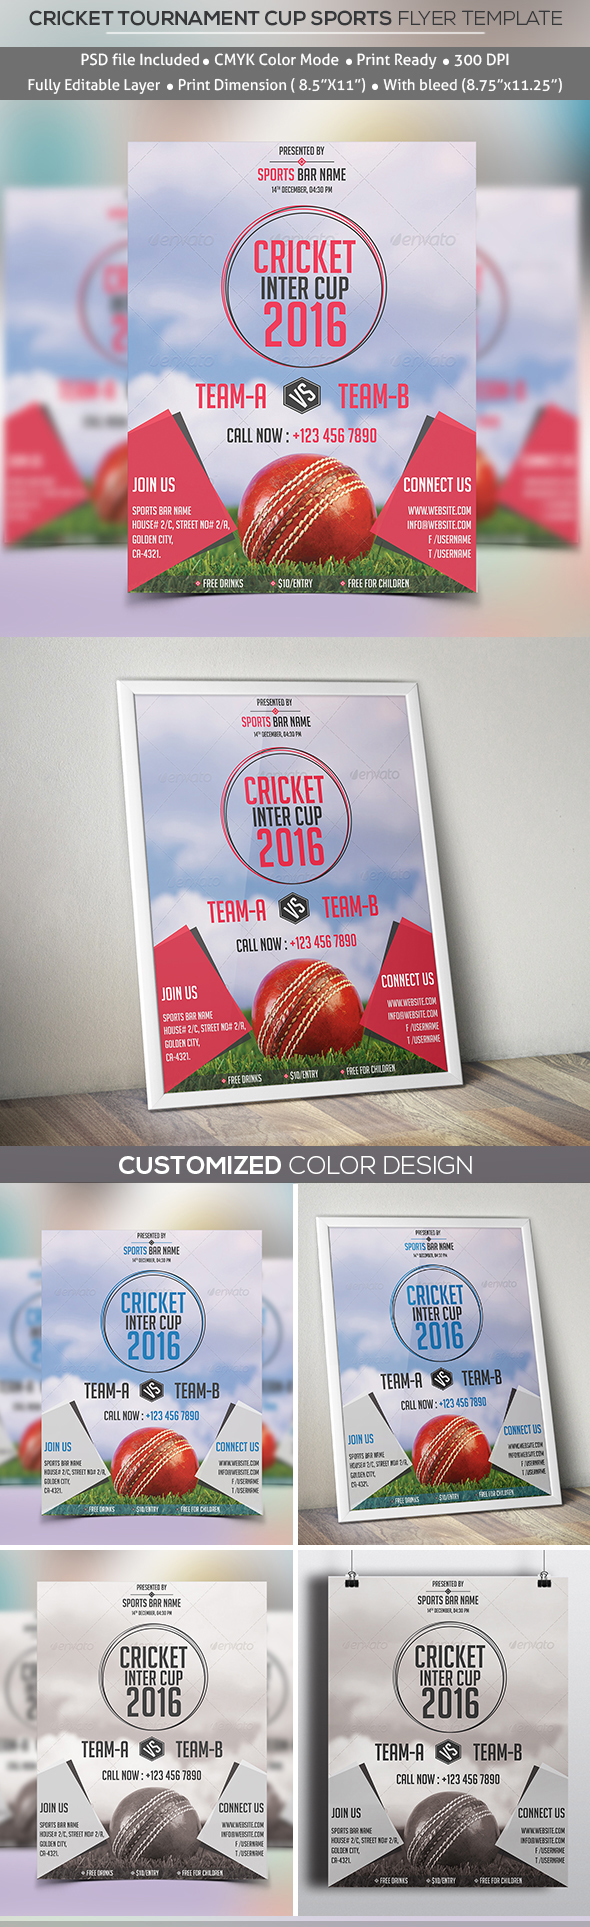 Cricket Tournament Cup Sports Flyer Template On Behance